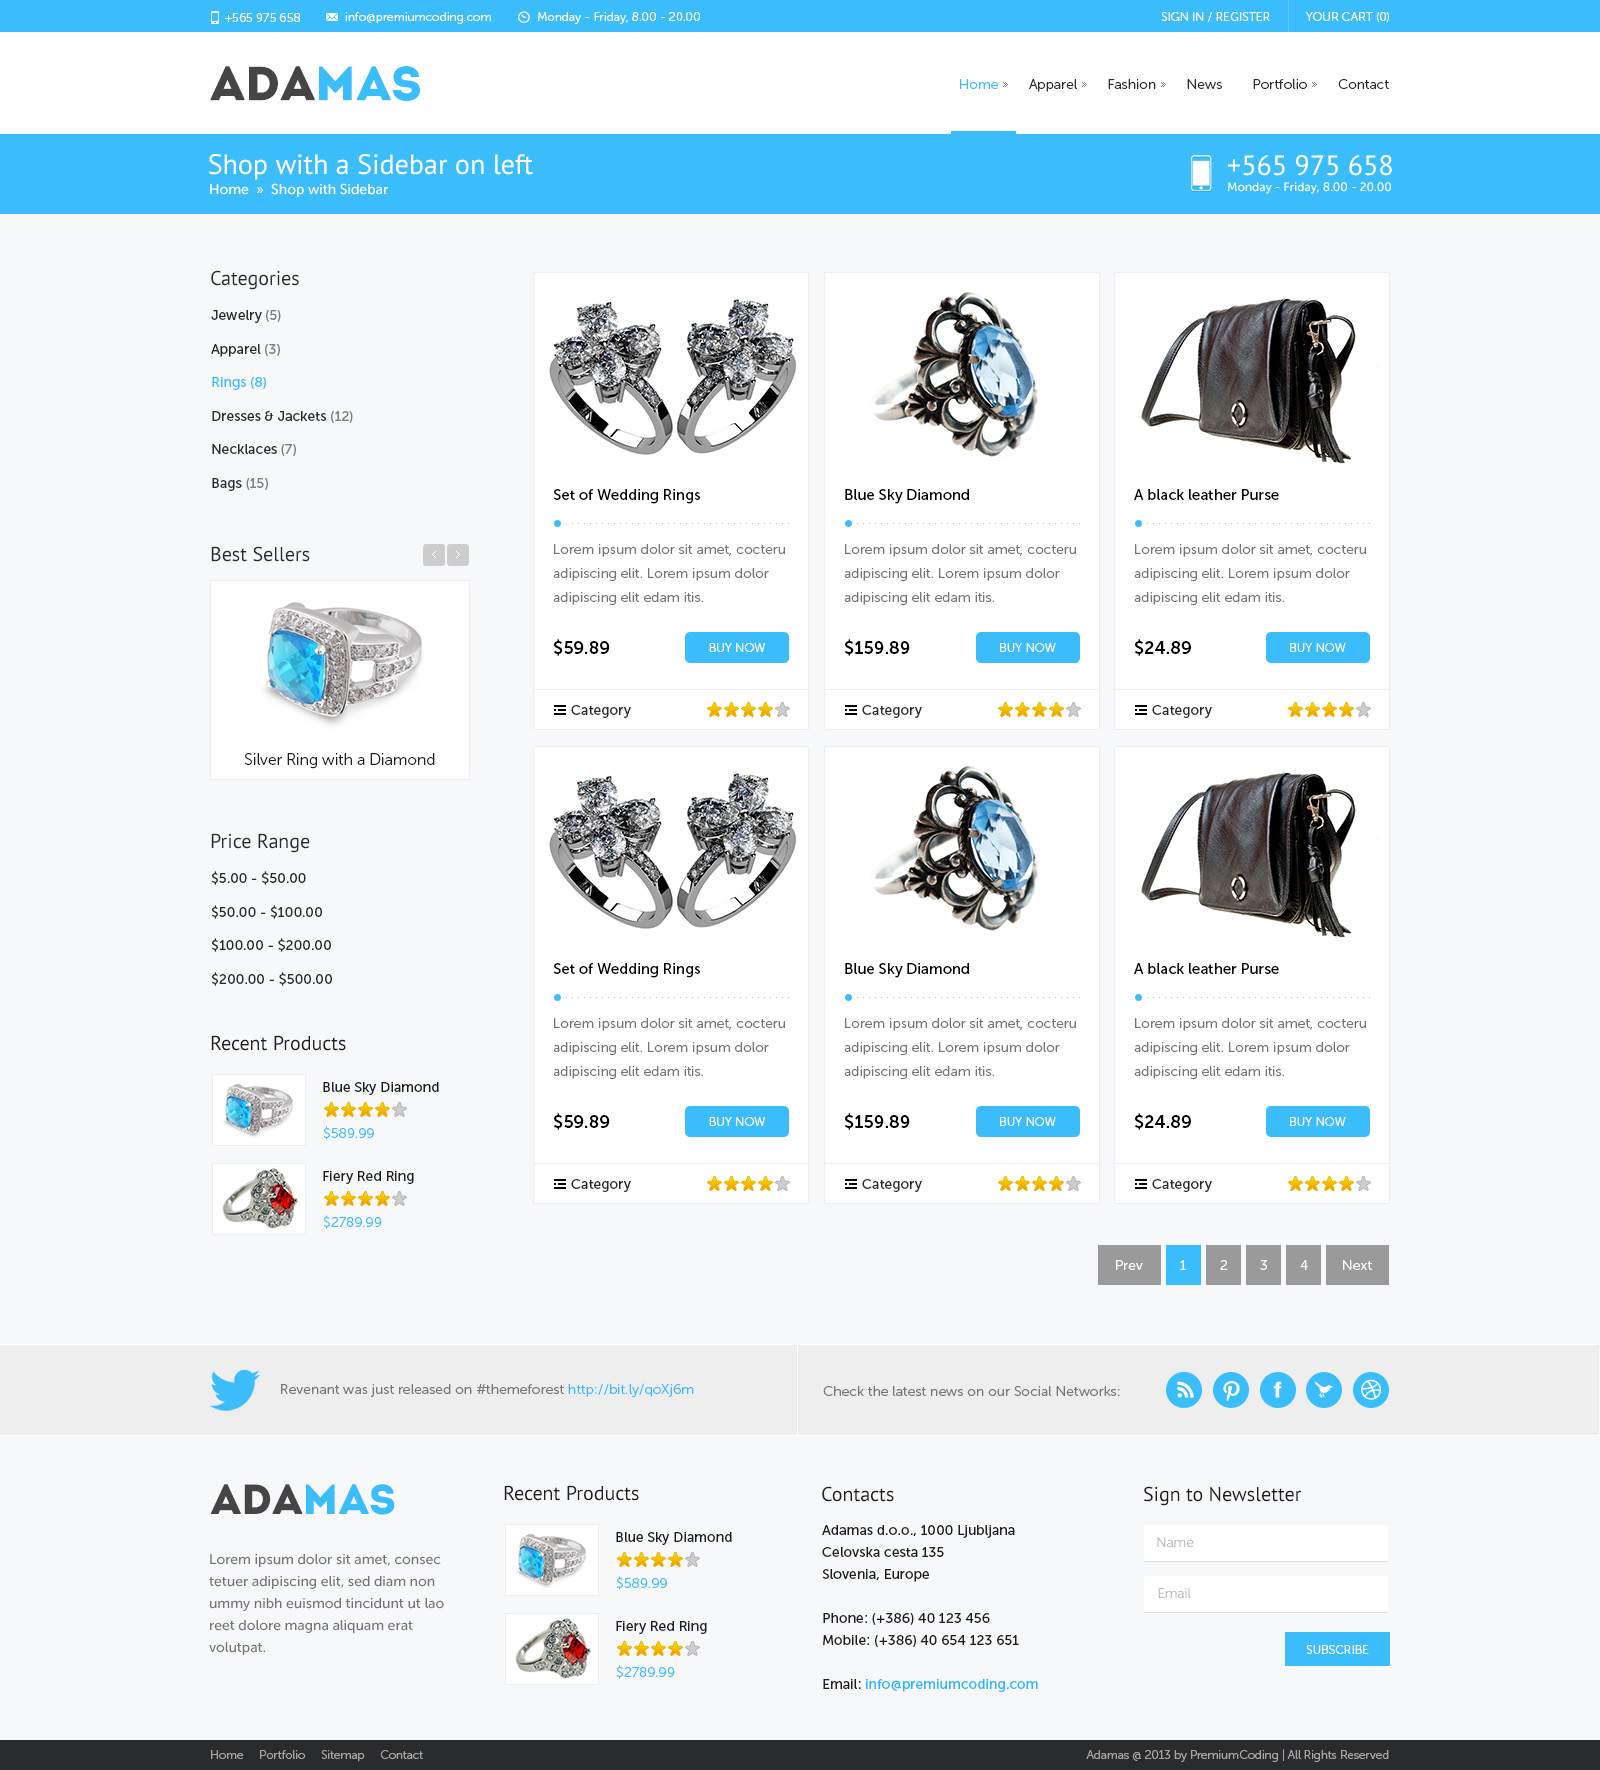 Freebie Adamas Ecommerce Website PSD Template PremiumCoding - Free ecommerce website templates shopping cart